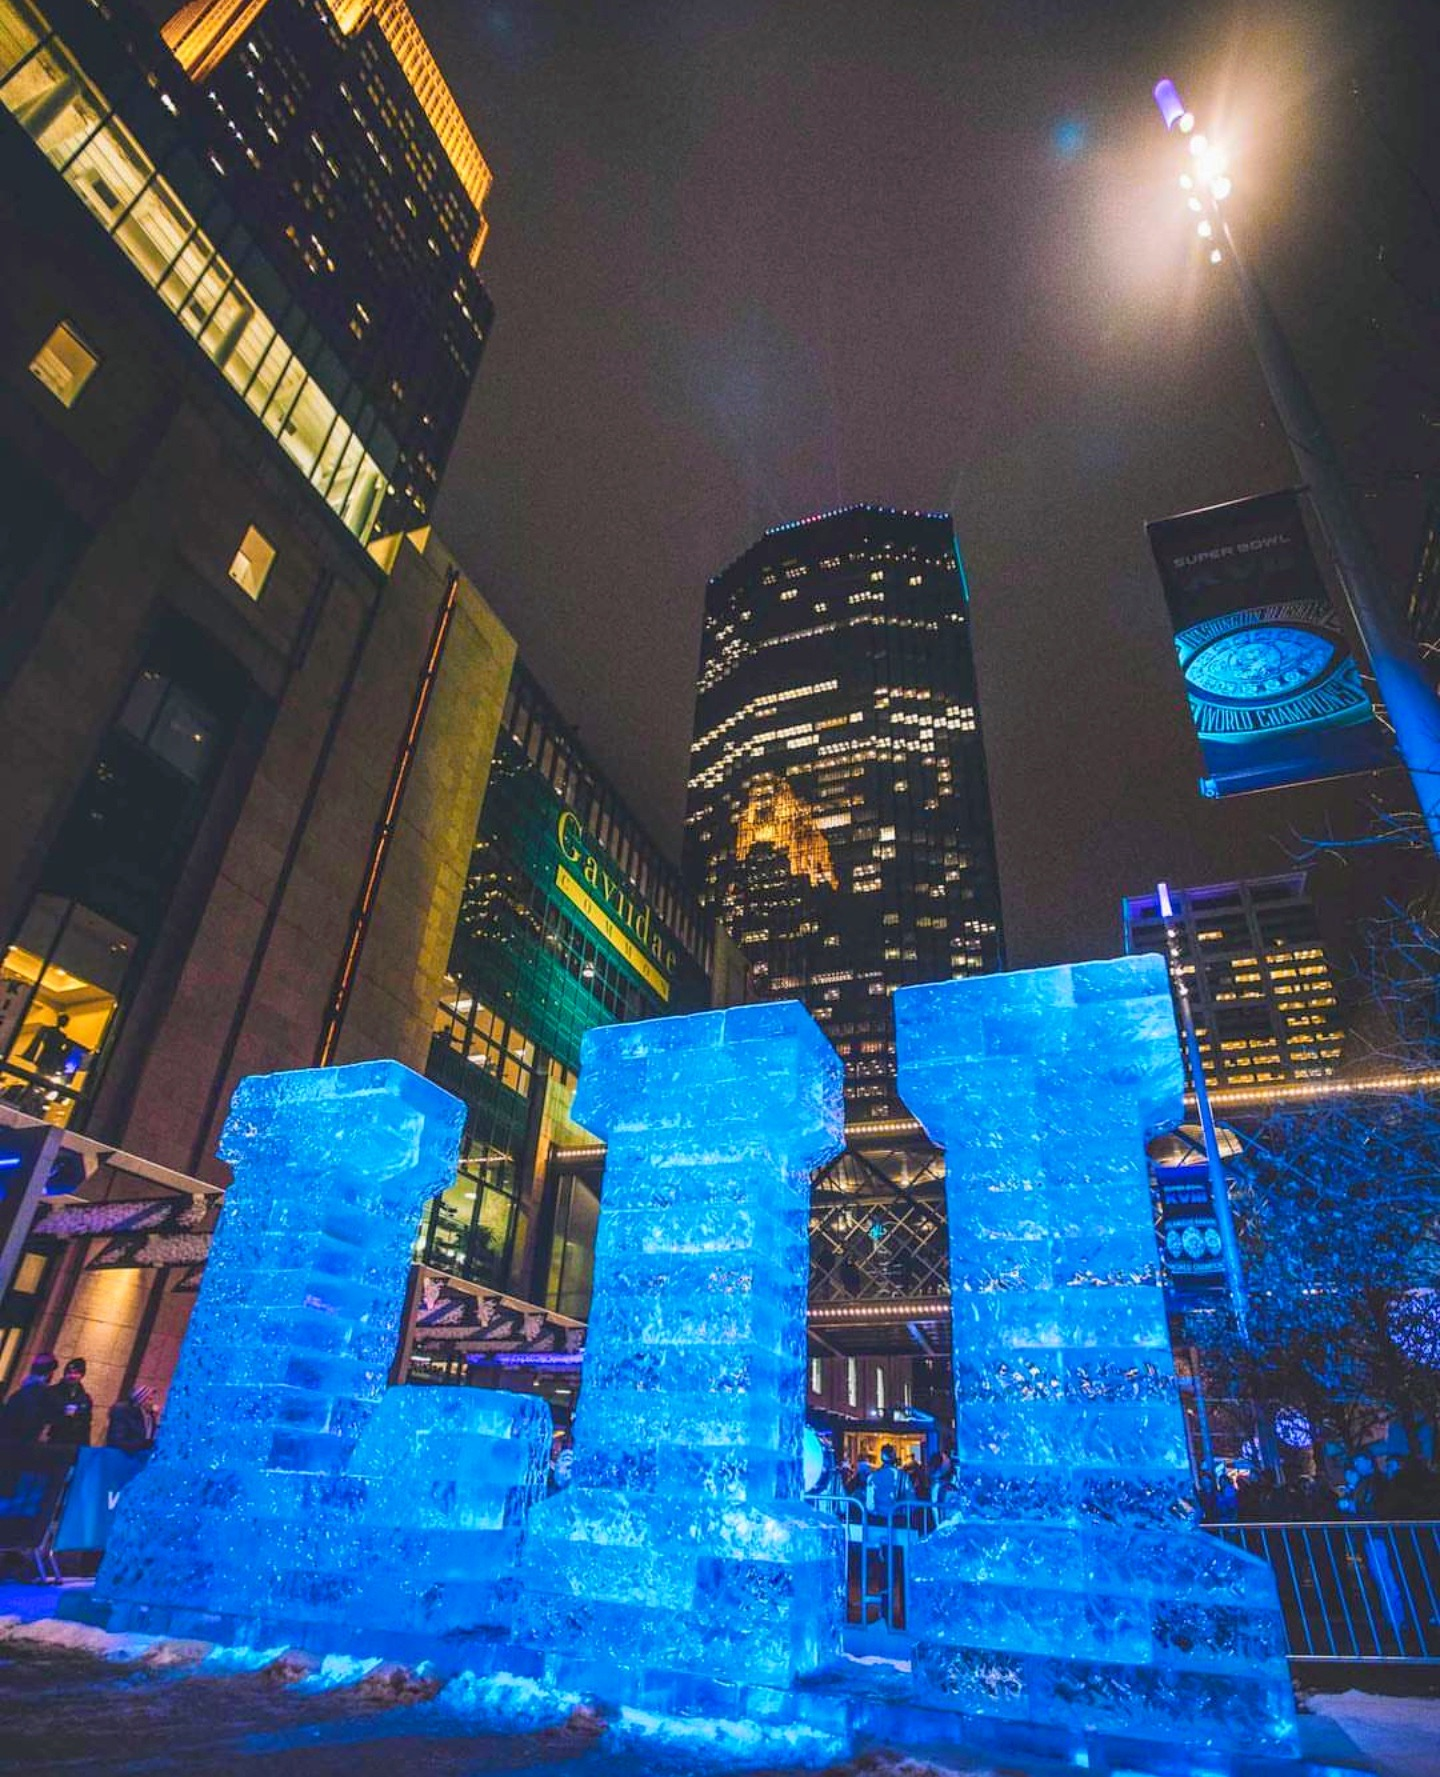 minnesota ice super bowl sculpture